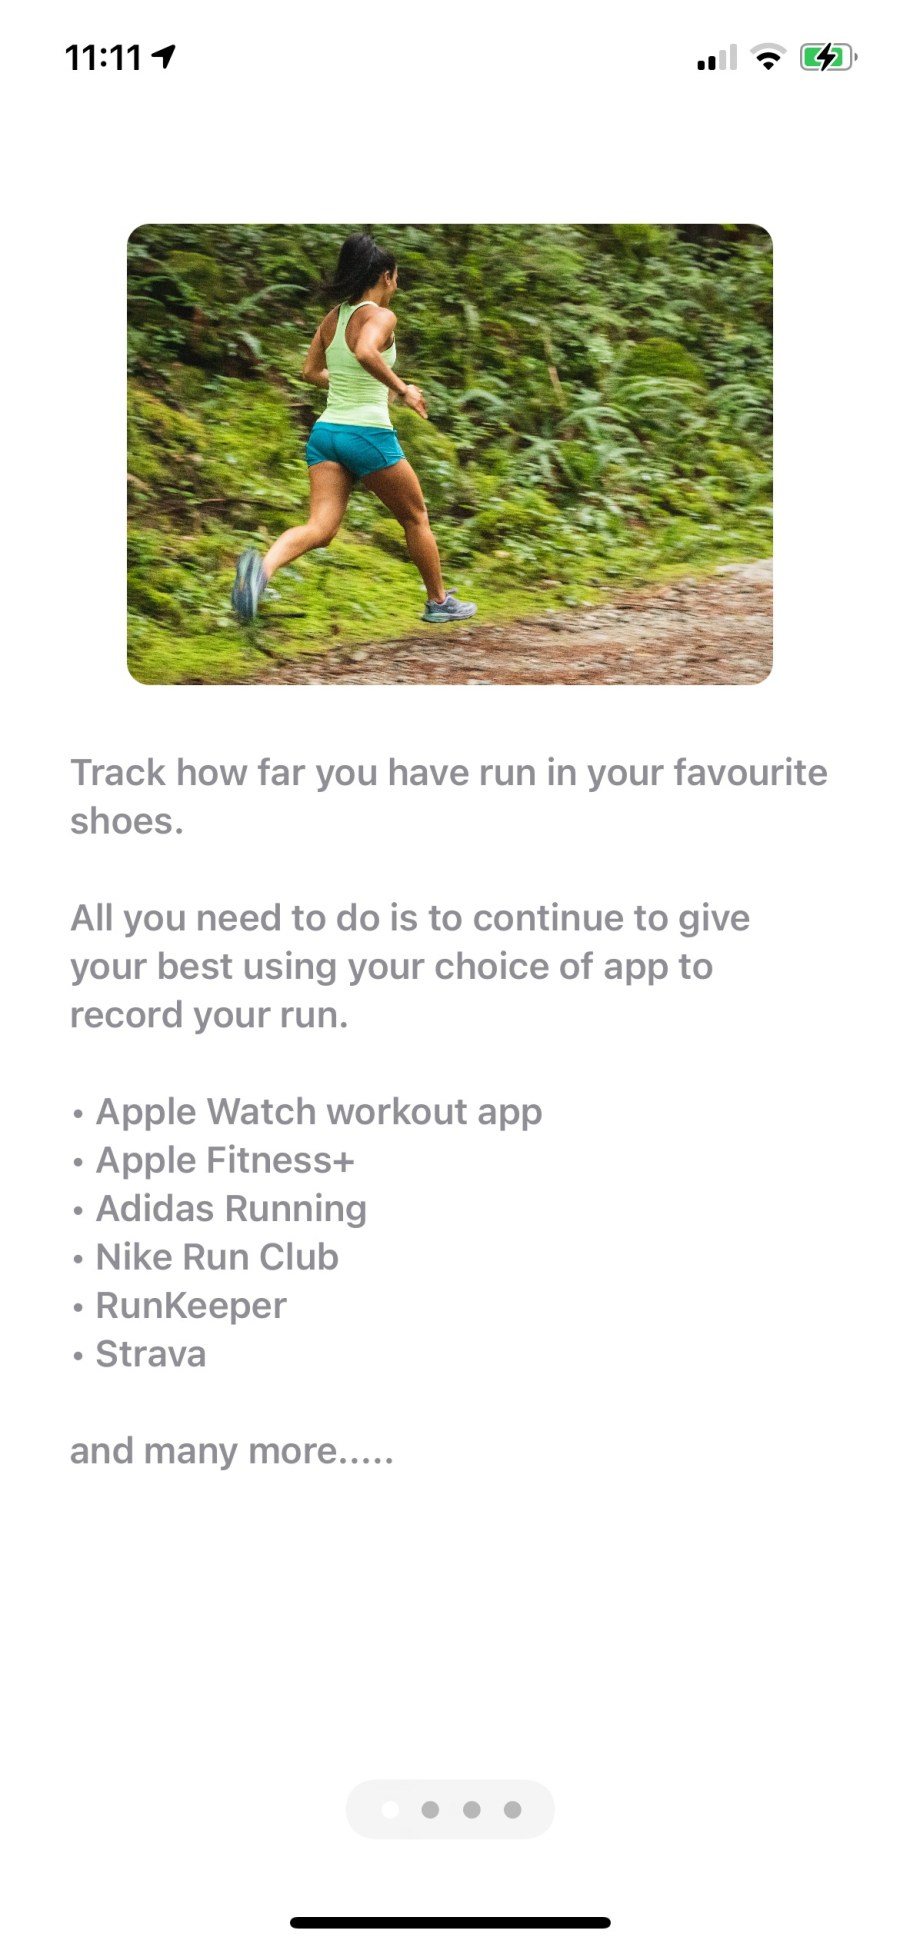 All you need to do is continue to give your best using your choice of app to record your run